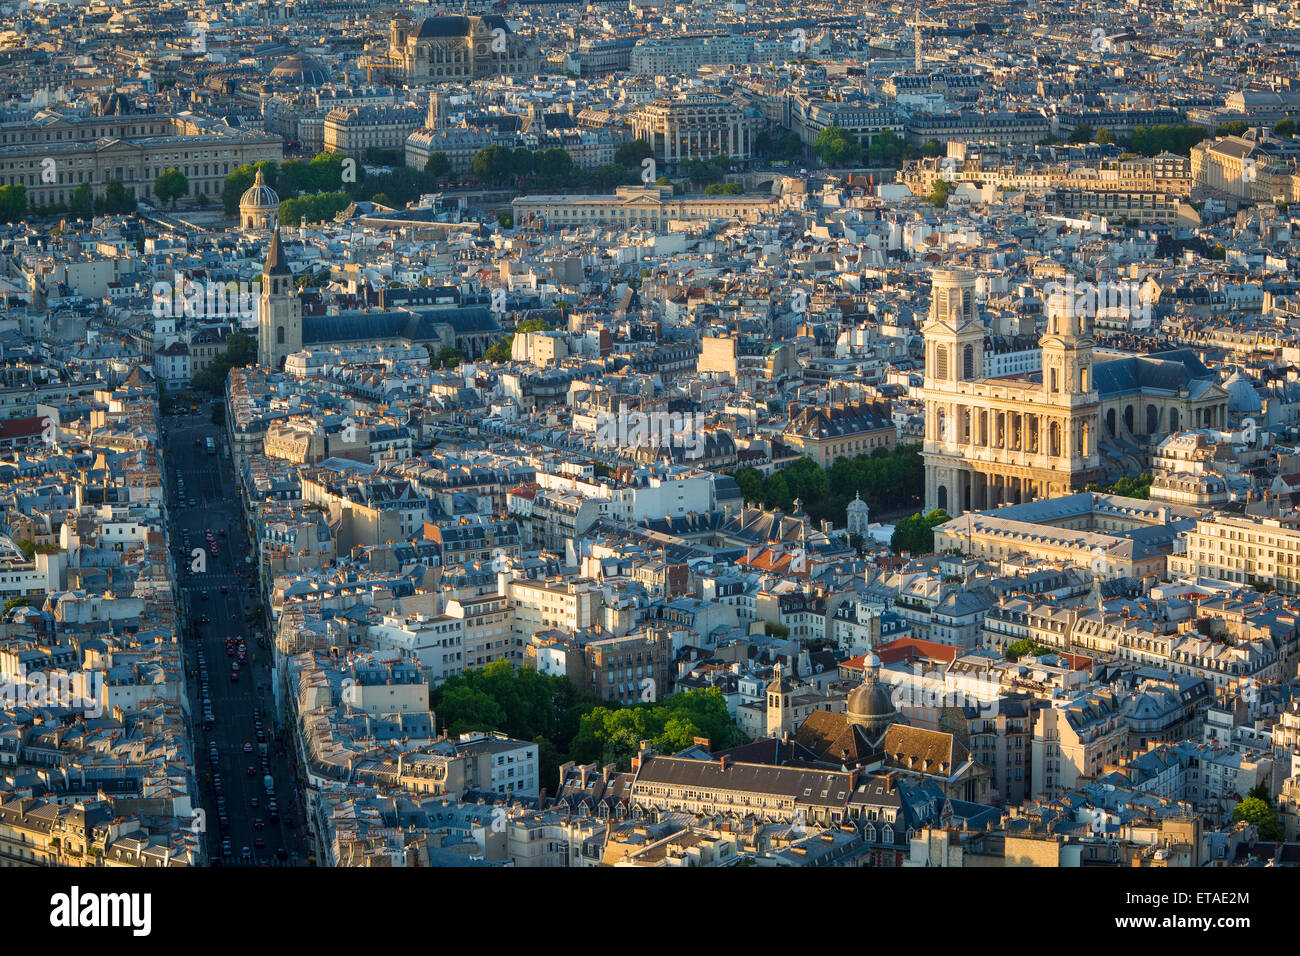 Overhead view of Eglise Saint Sulpice and the buldings of Paris, France Stock Photo